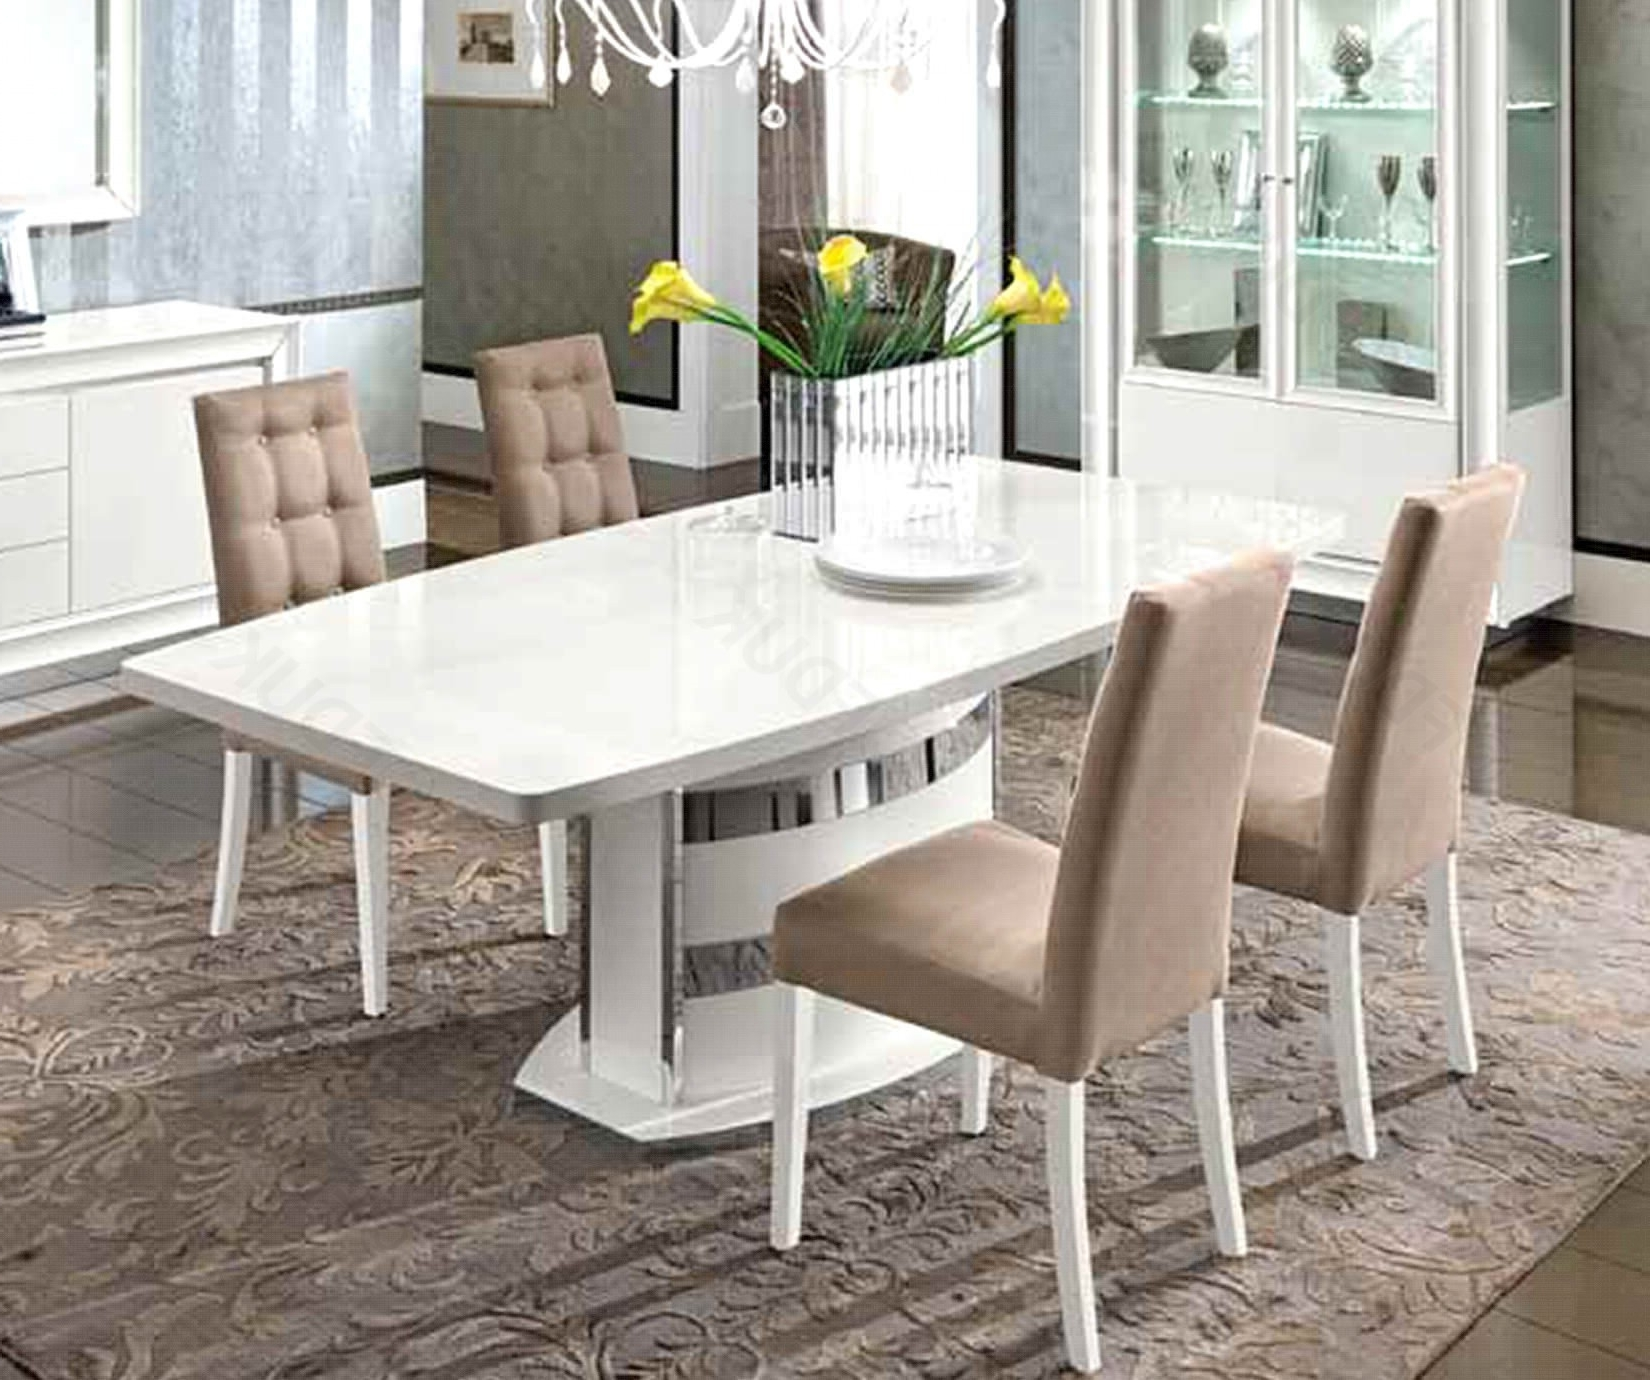 Oval White High Gloss Dining Tables Intended For Most Recent The 26 New White High Gloss Extending Dining Table – Welovedandelion (View 15 of 25)